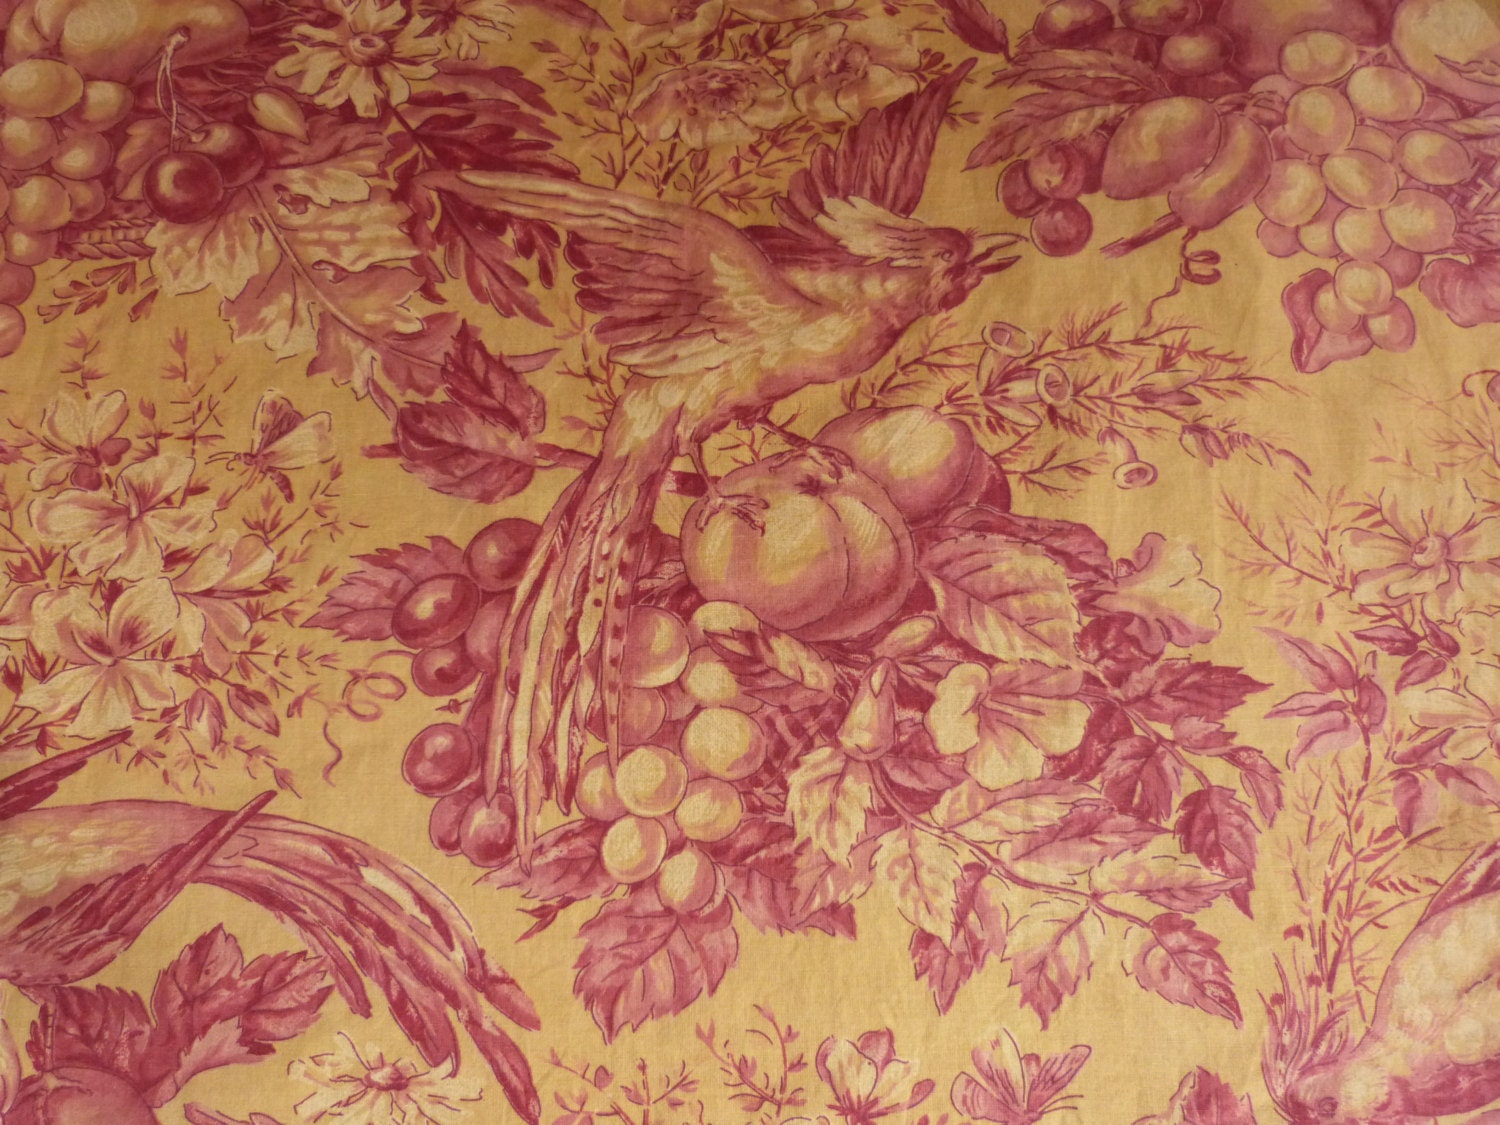 Antique french toile fabric toile de jouy fabrics w bird decor for French toile fabric